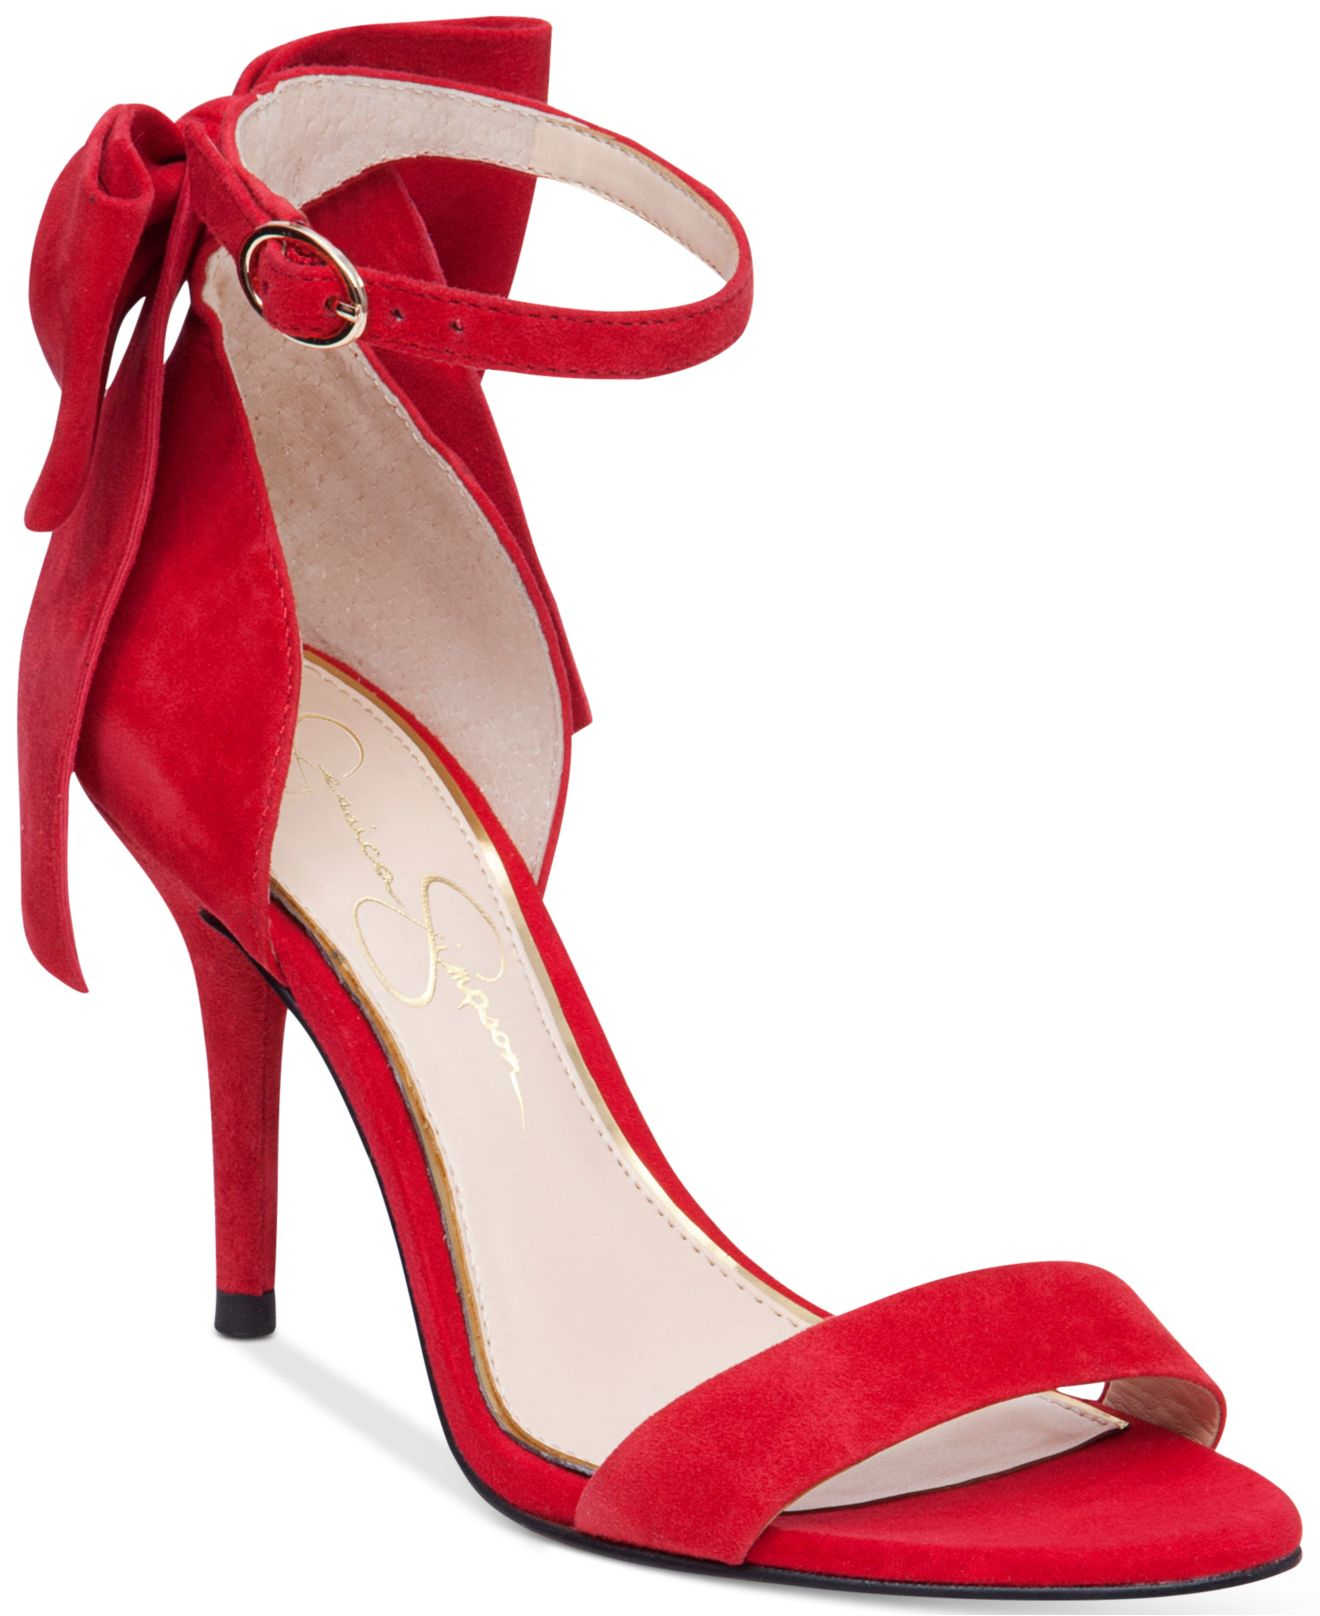 Jessica simpson Millee Dress Sandals in Red  Lyst